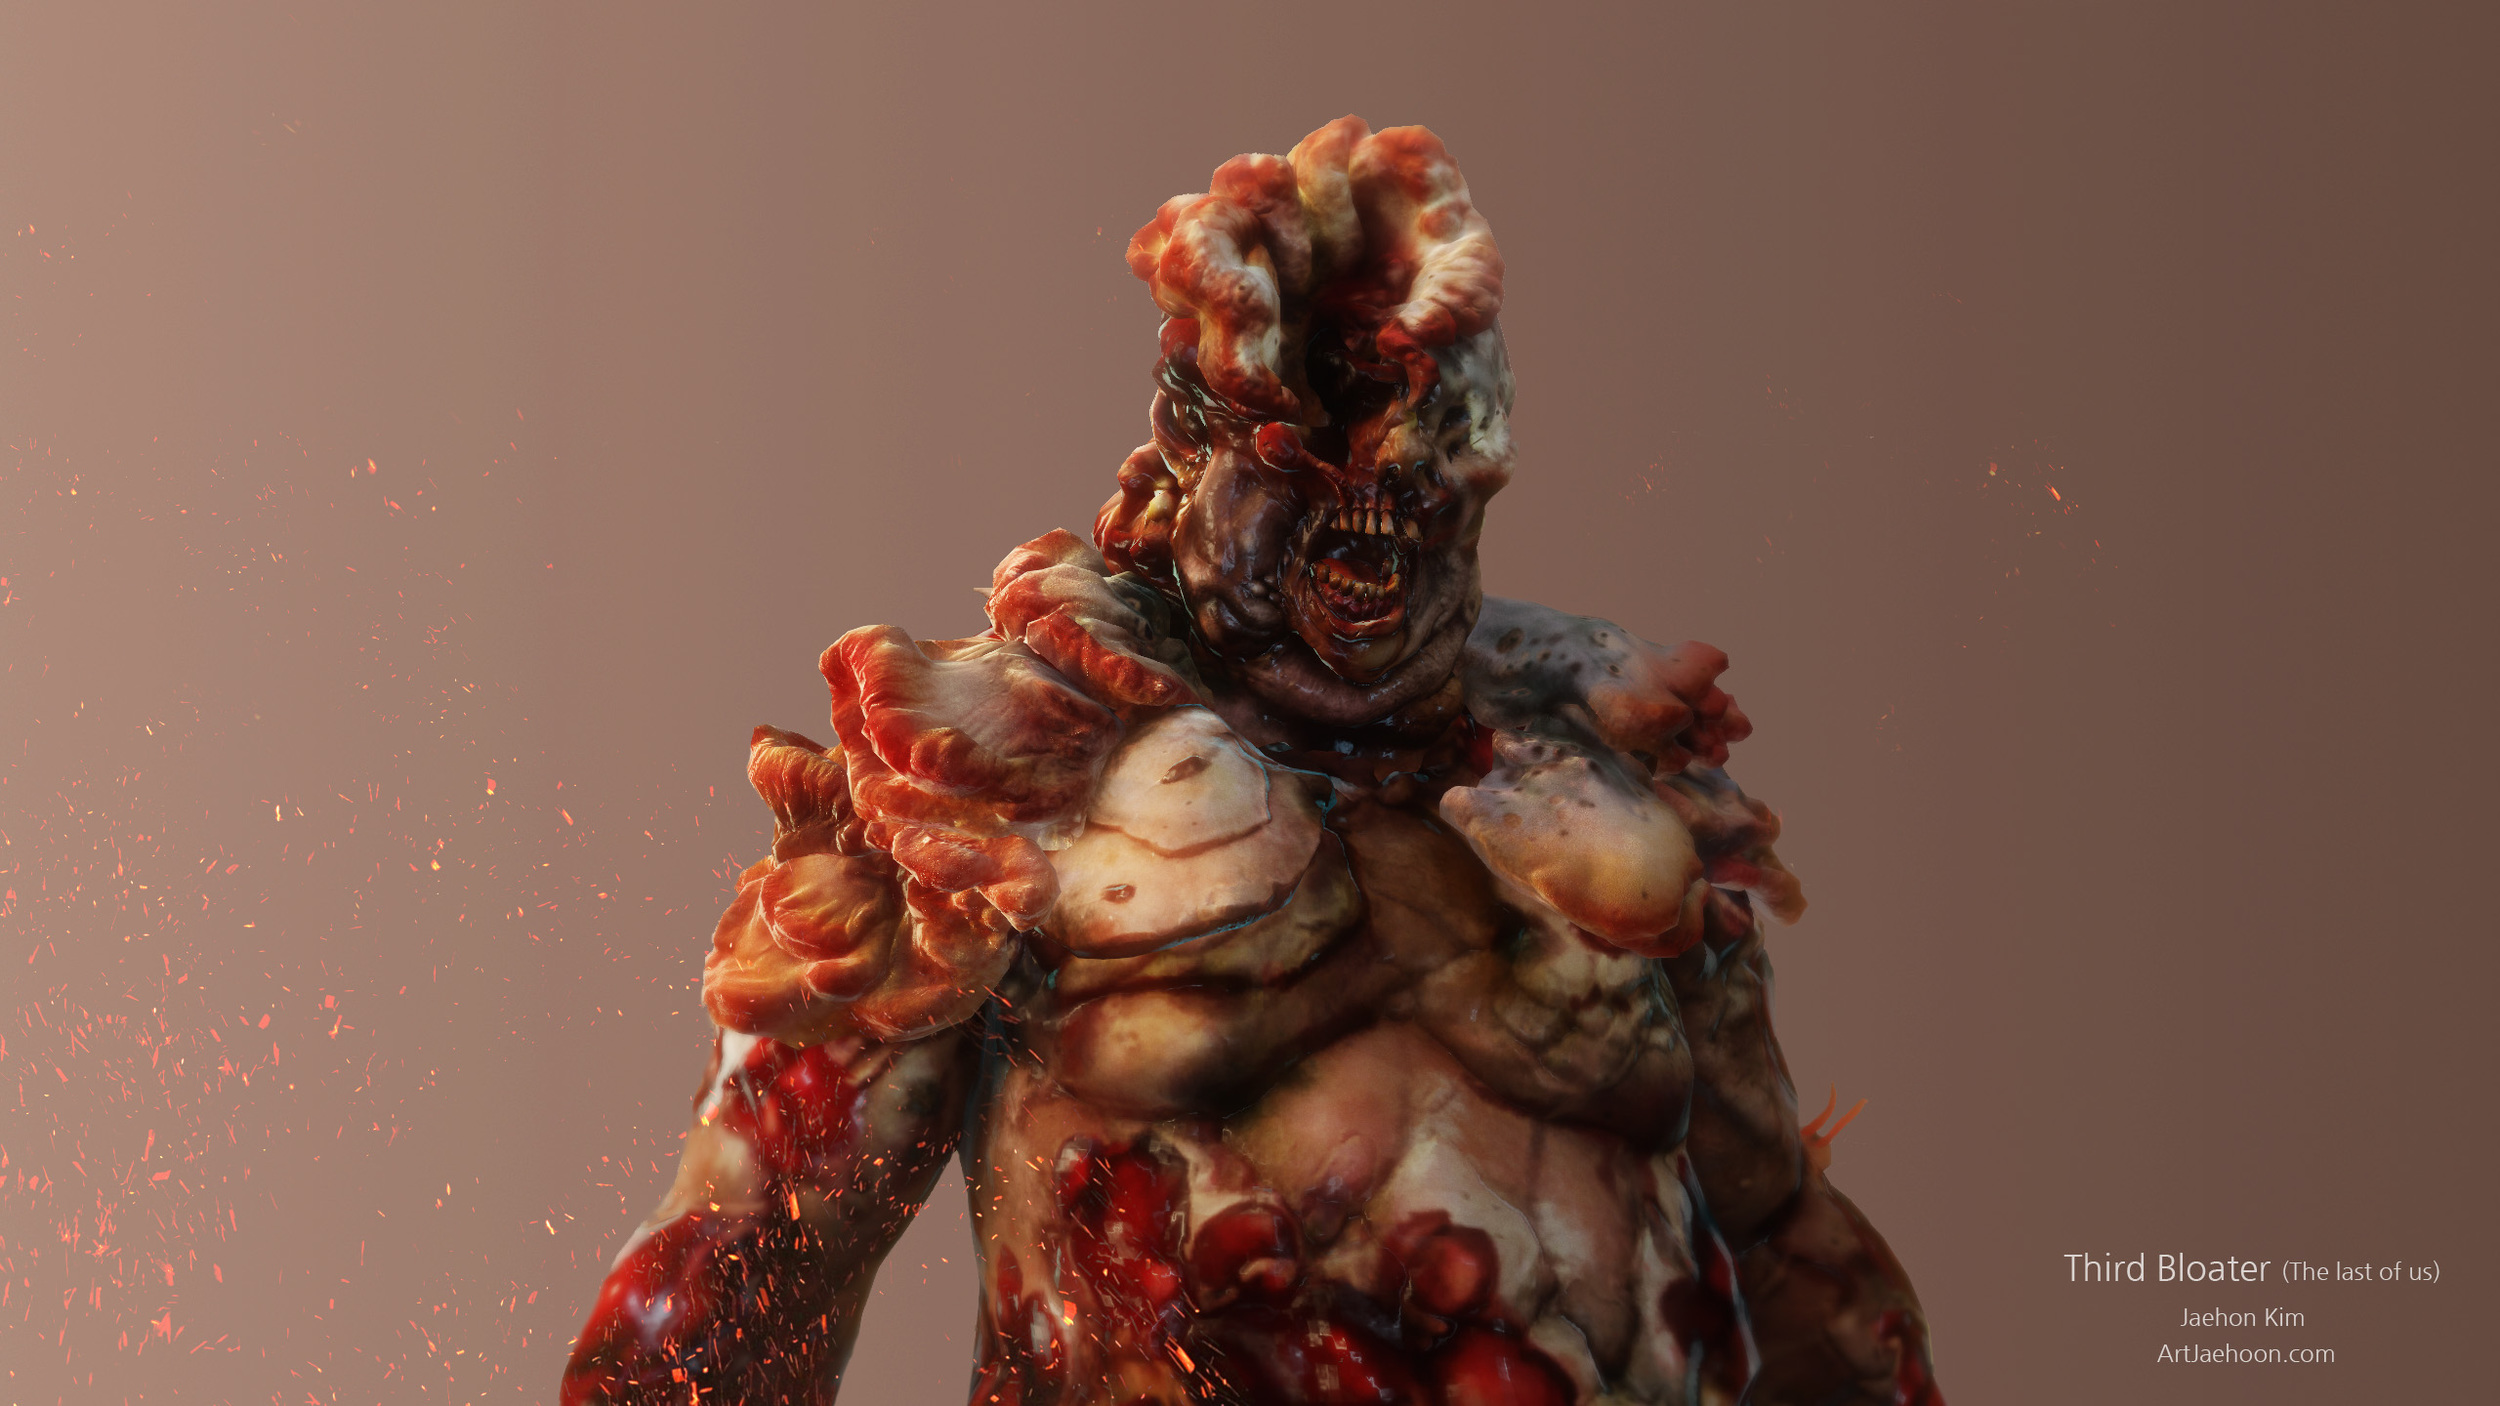 Bloaters  are the fourth, final, and most dangerous stage of the Infected and are immensely strong. Bloaters take the longest to develop, making them the rarest of the infected. They are covered in thick fungus that effectively doubles as armor plate.